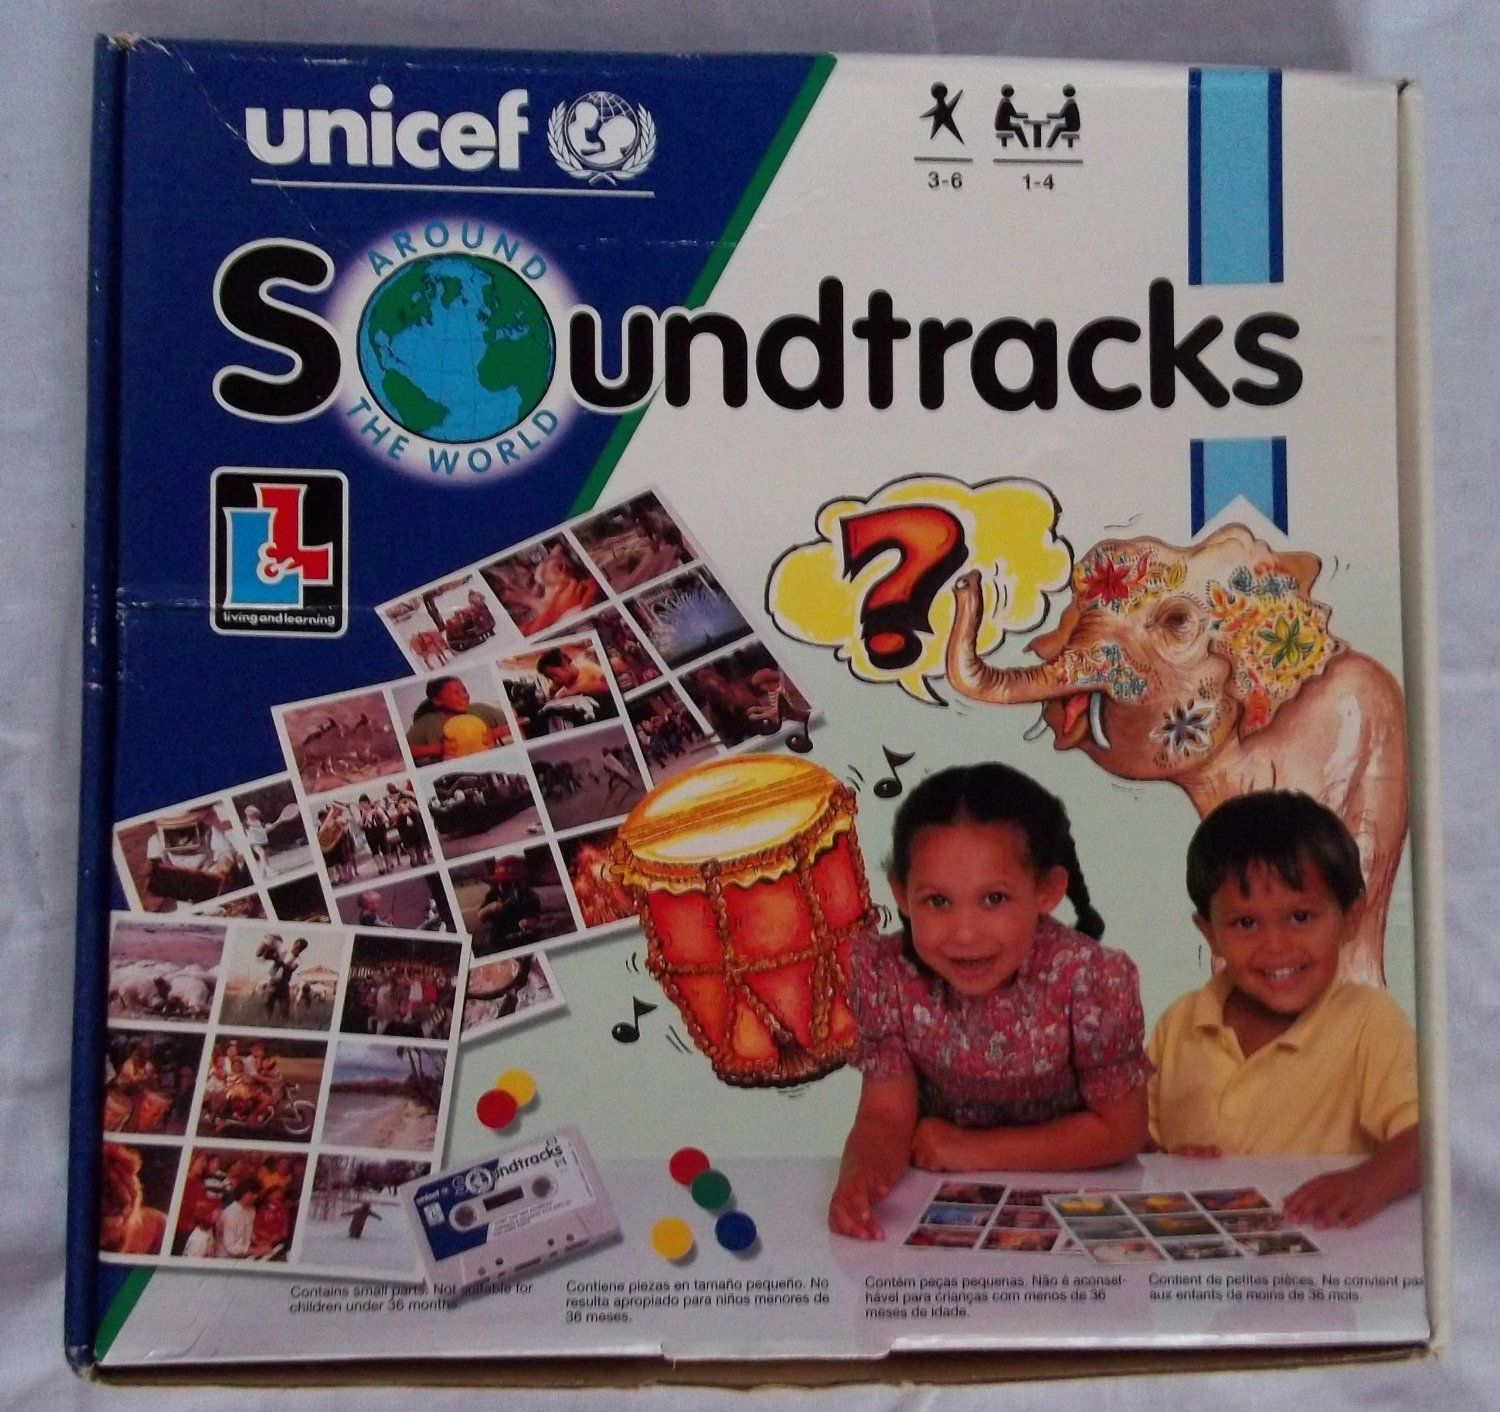 learning and living unicef soundtracks around the world game if